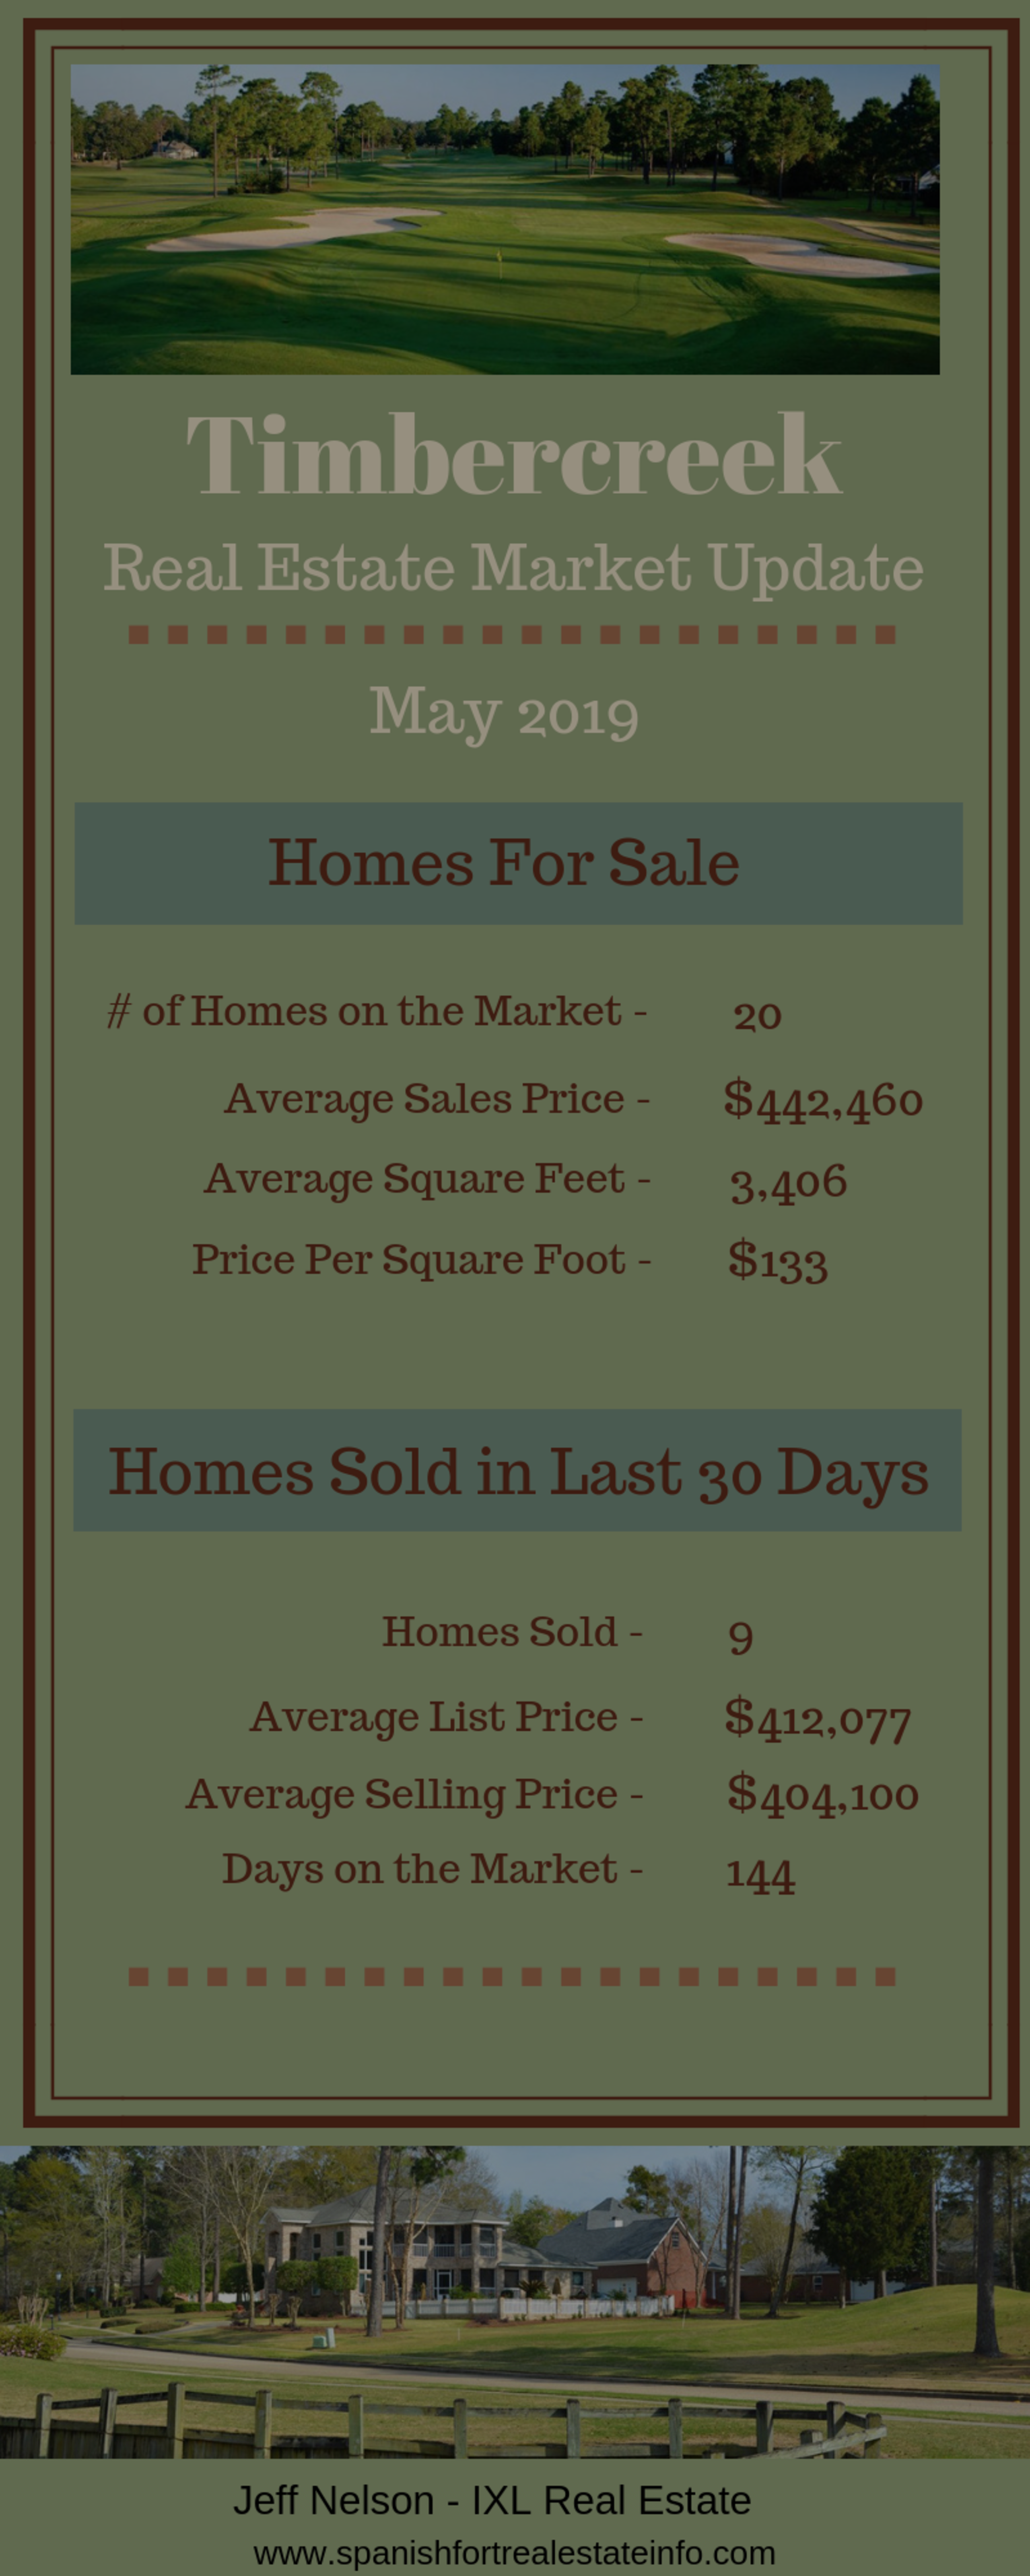 Timbercreek Real Estate Market Update – May 2019